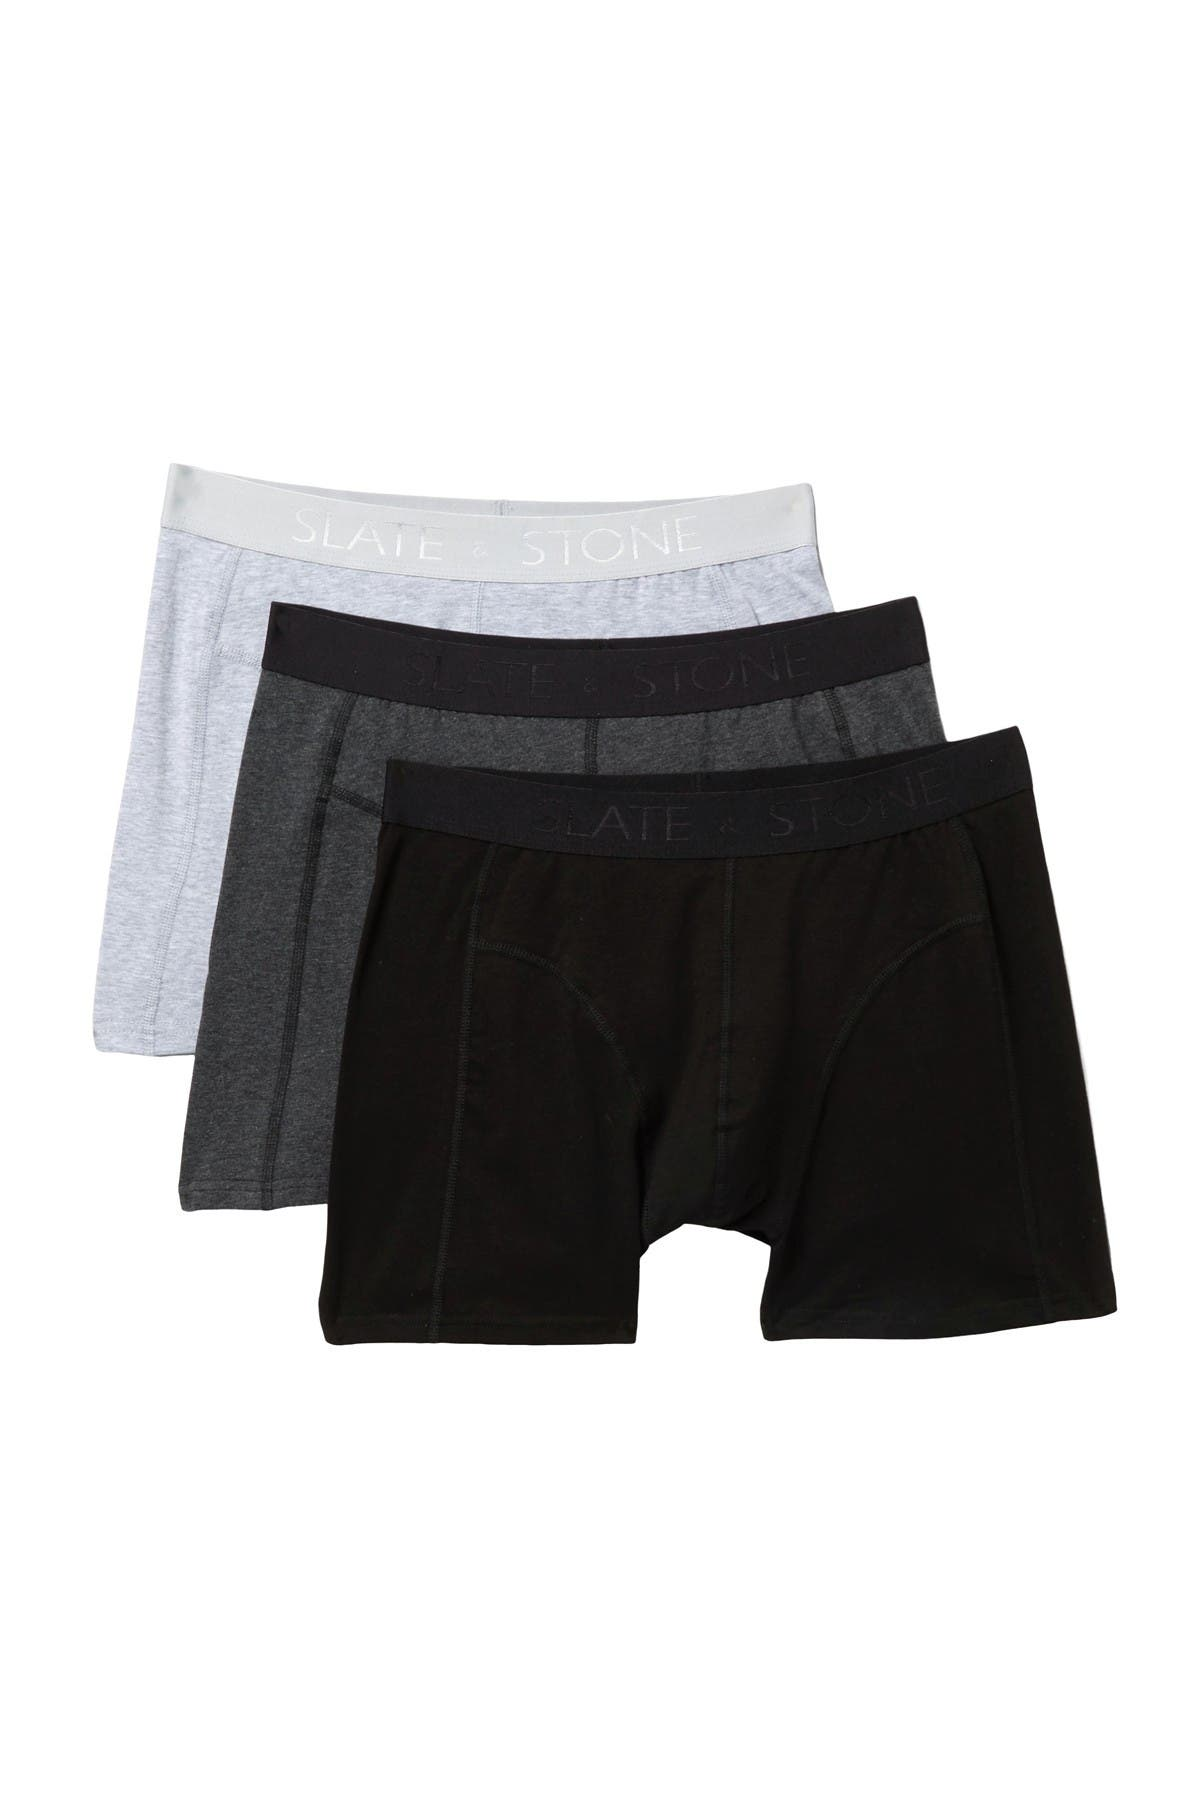 Image of Slate & Stone Boxer Briefs - Pack of 3